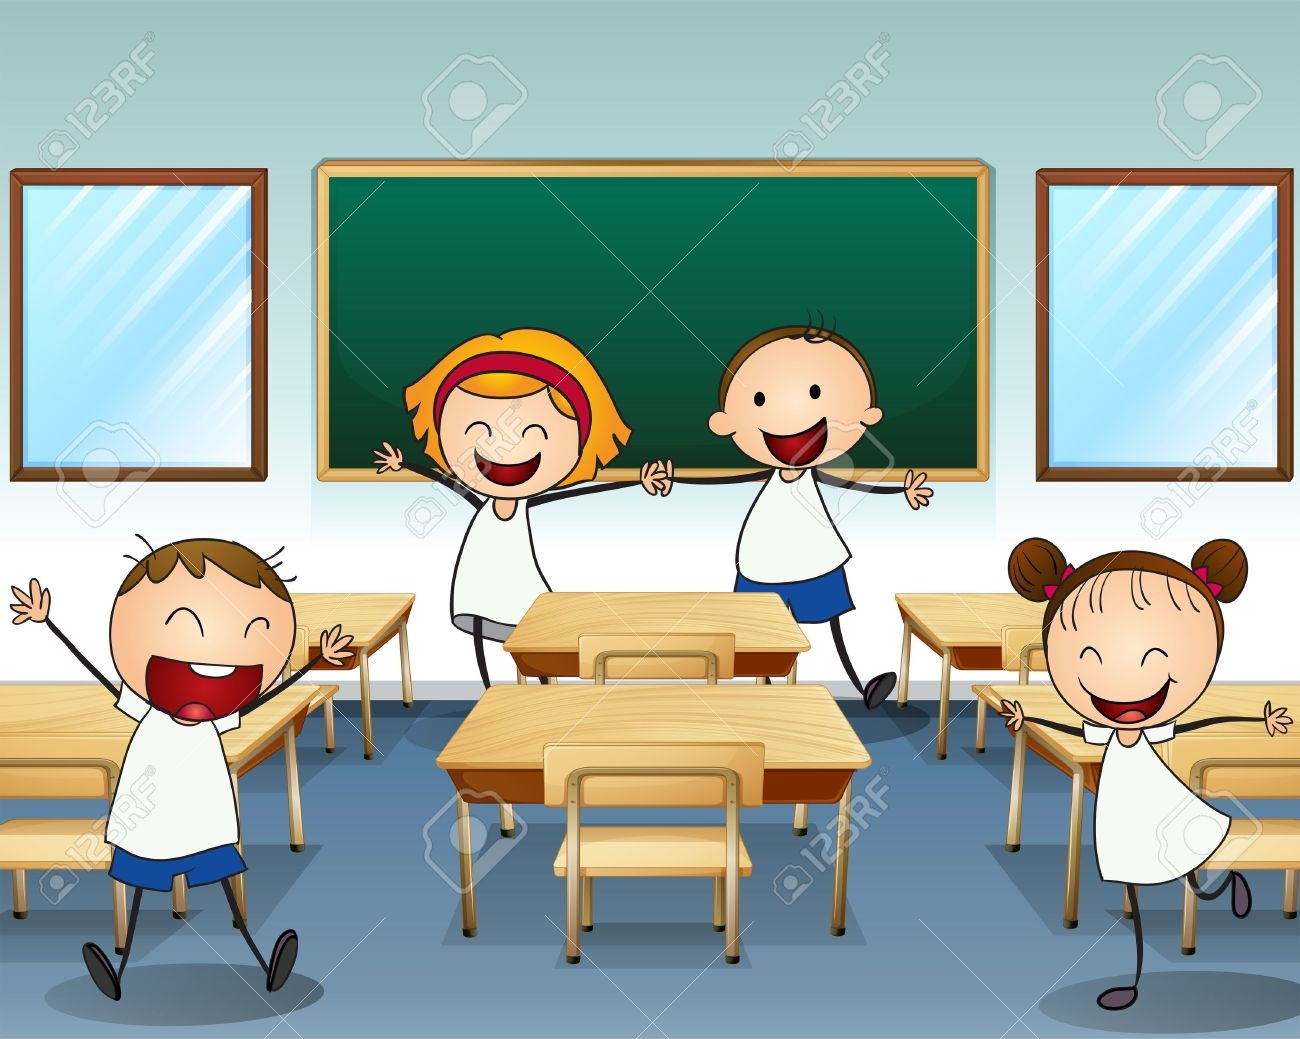 Animated Classroom Clipart-Animated Classroom Clipart-9